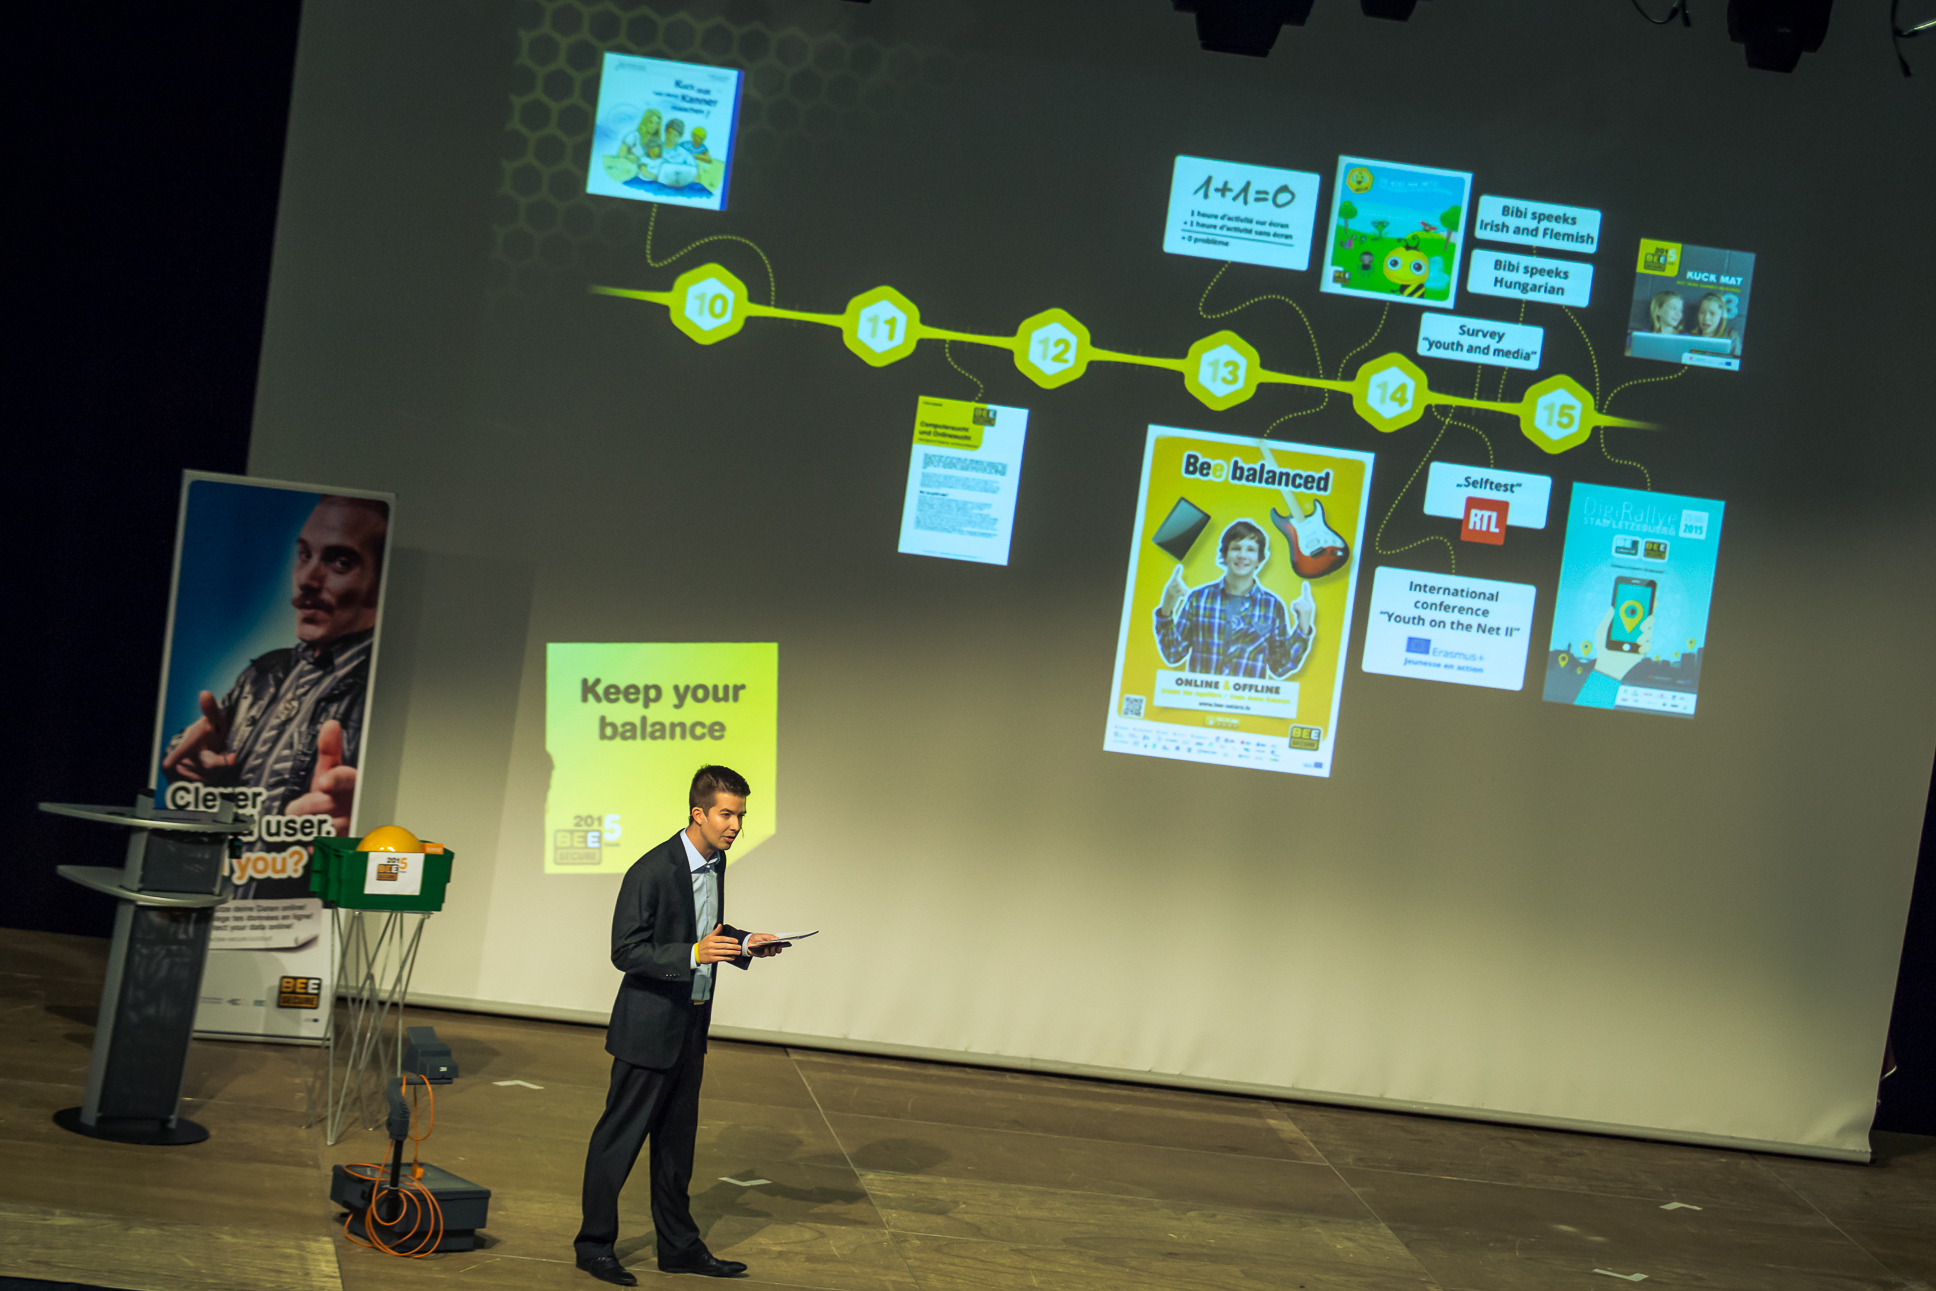 2015.10.09 - 5 Jahre BeeSecure-60